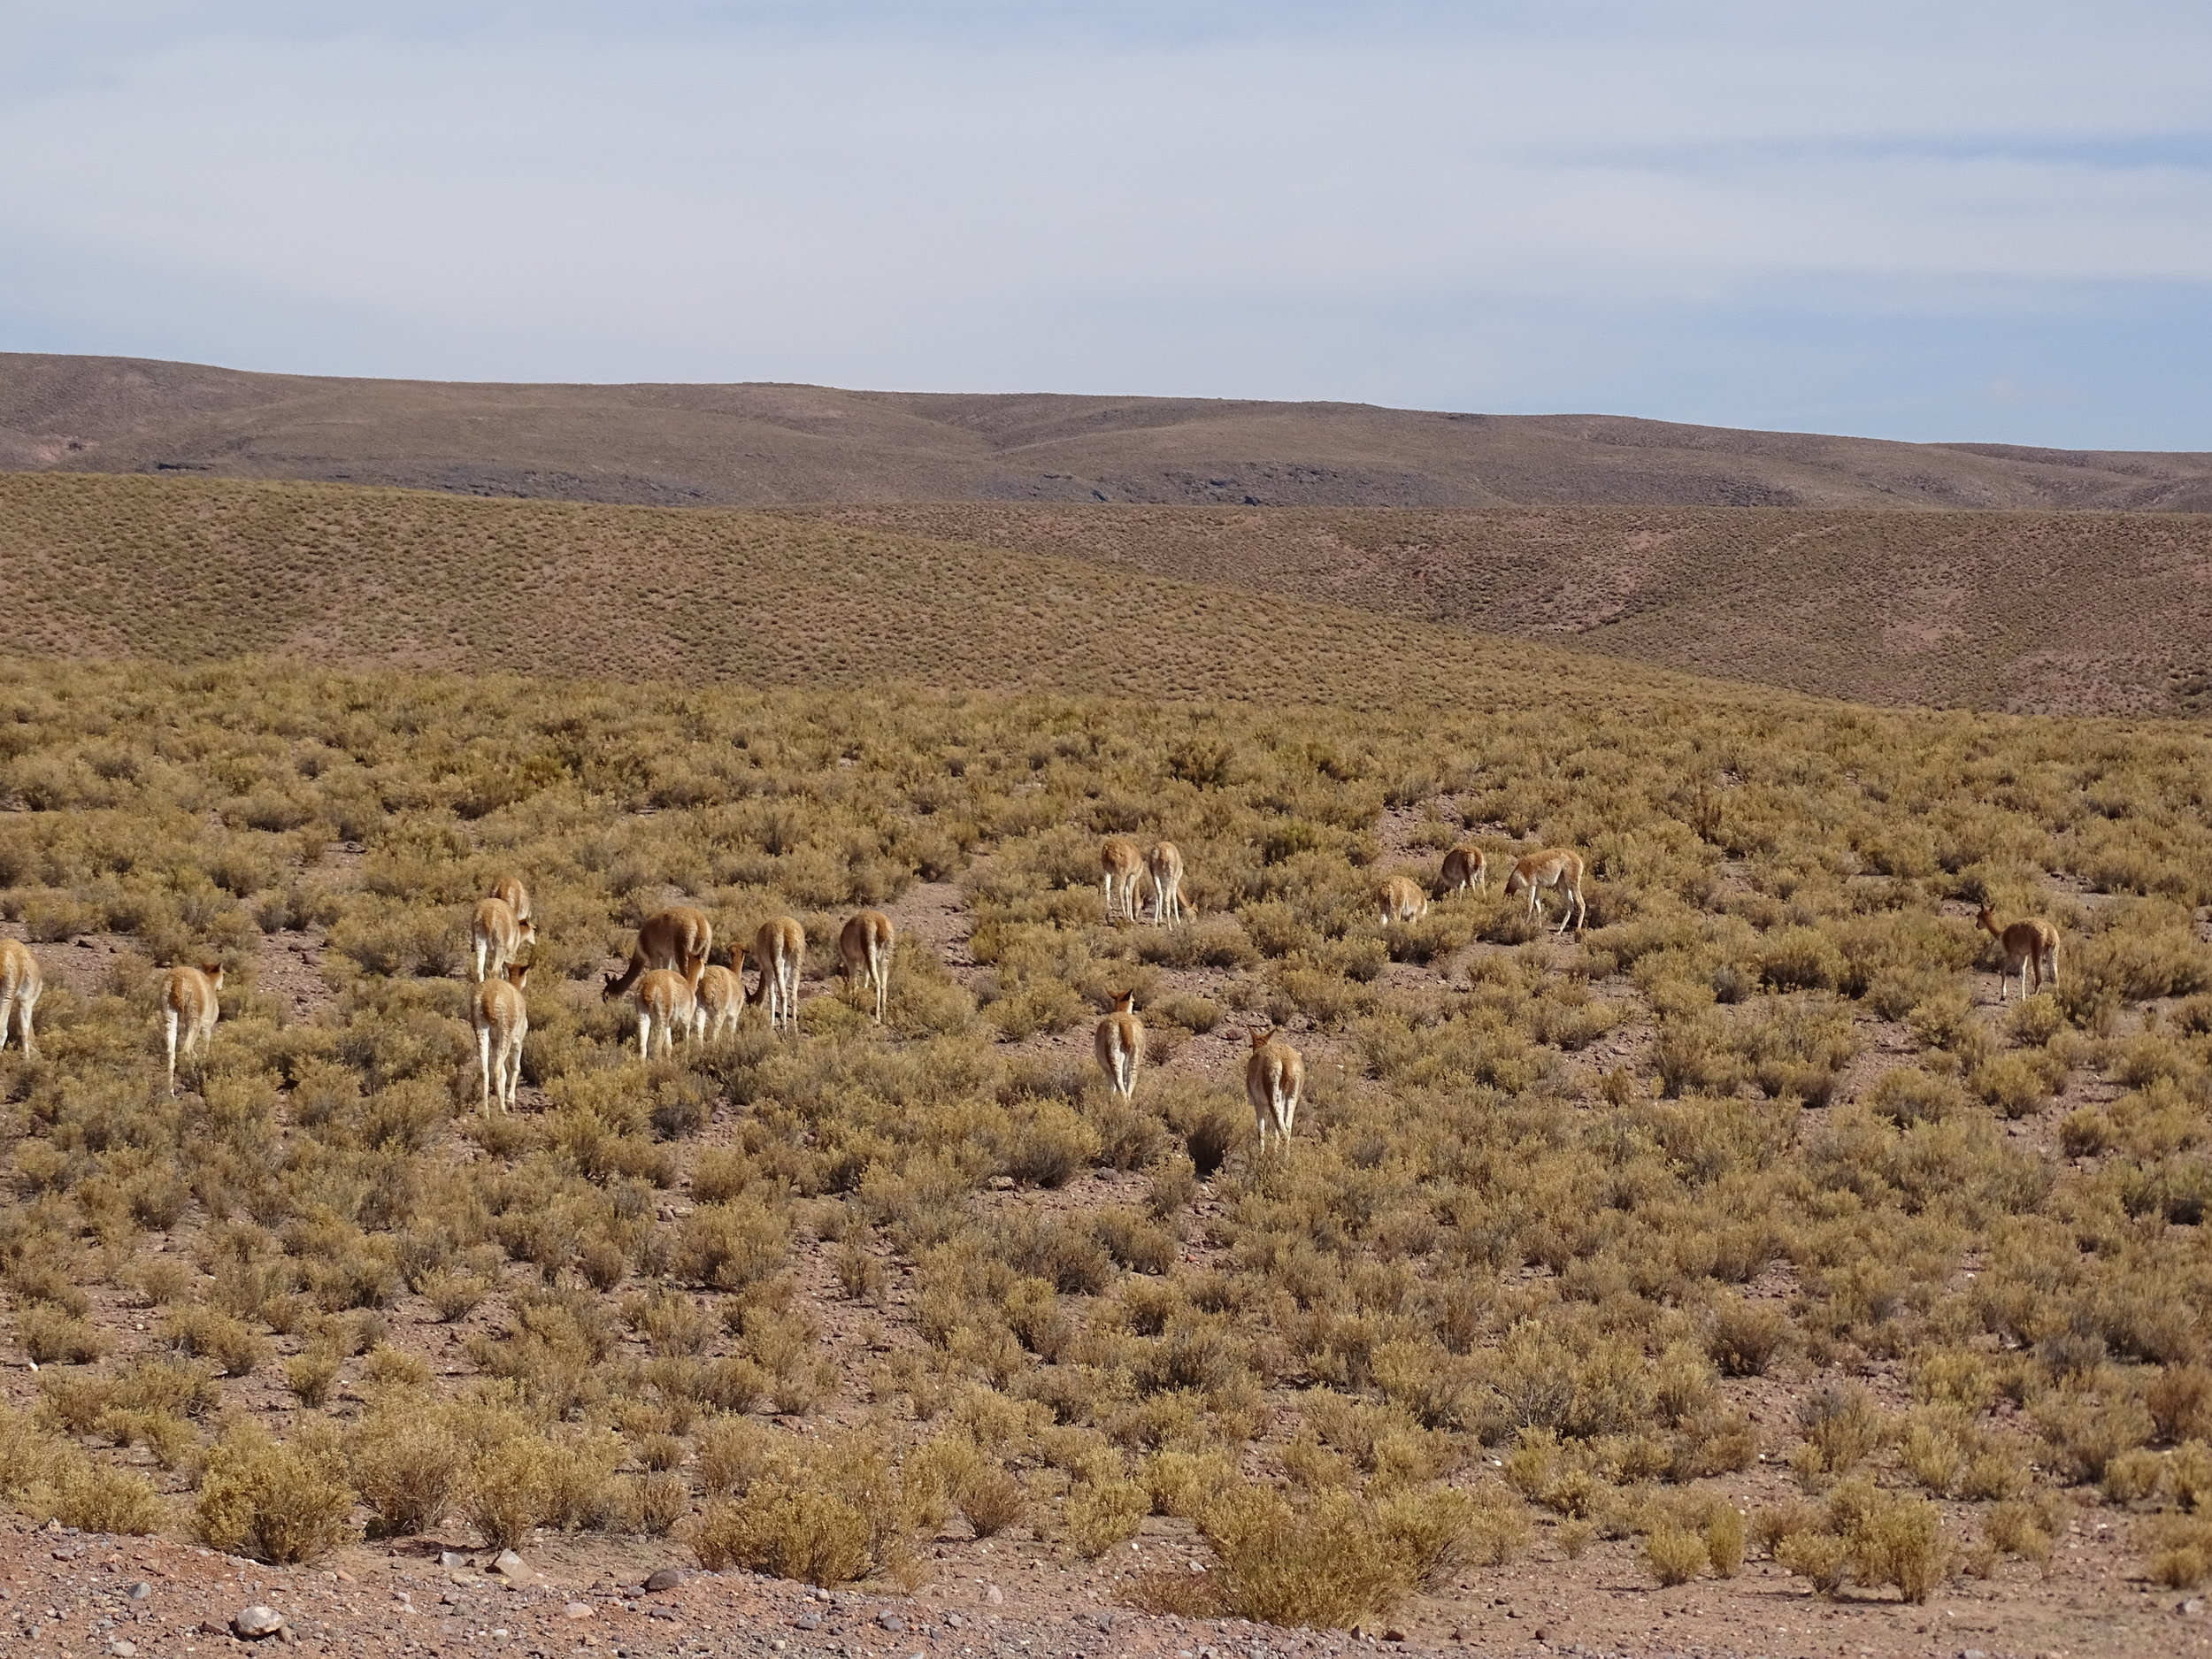 Altiplano wildlife.